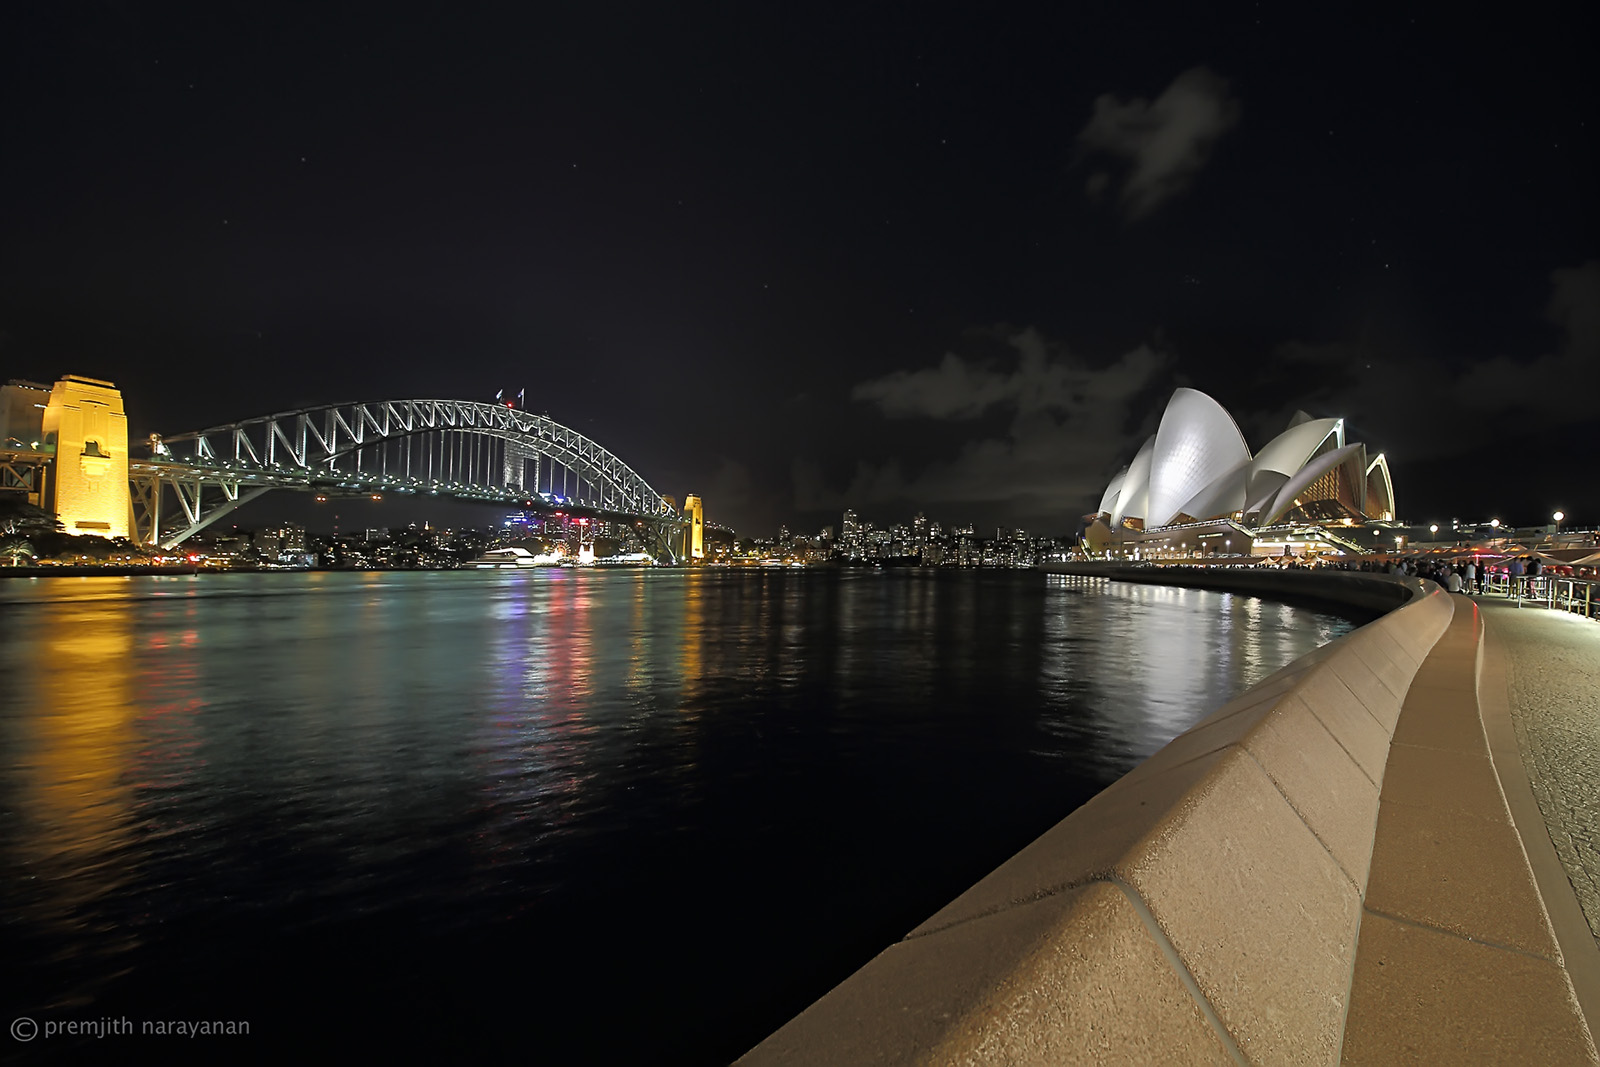 Sydney Harbour Bridge & Opera House - View from Darling Harbour